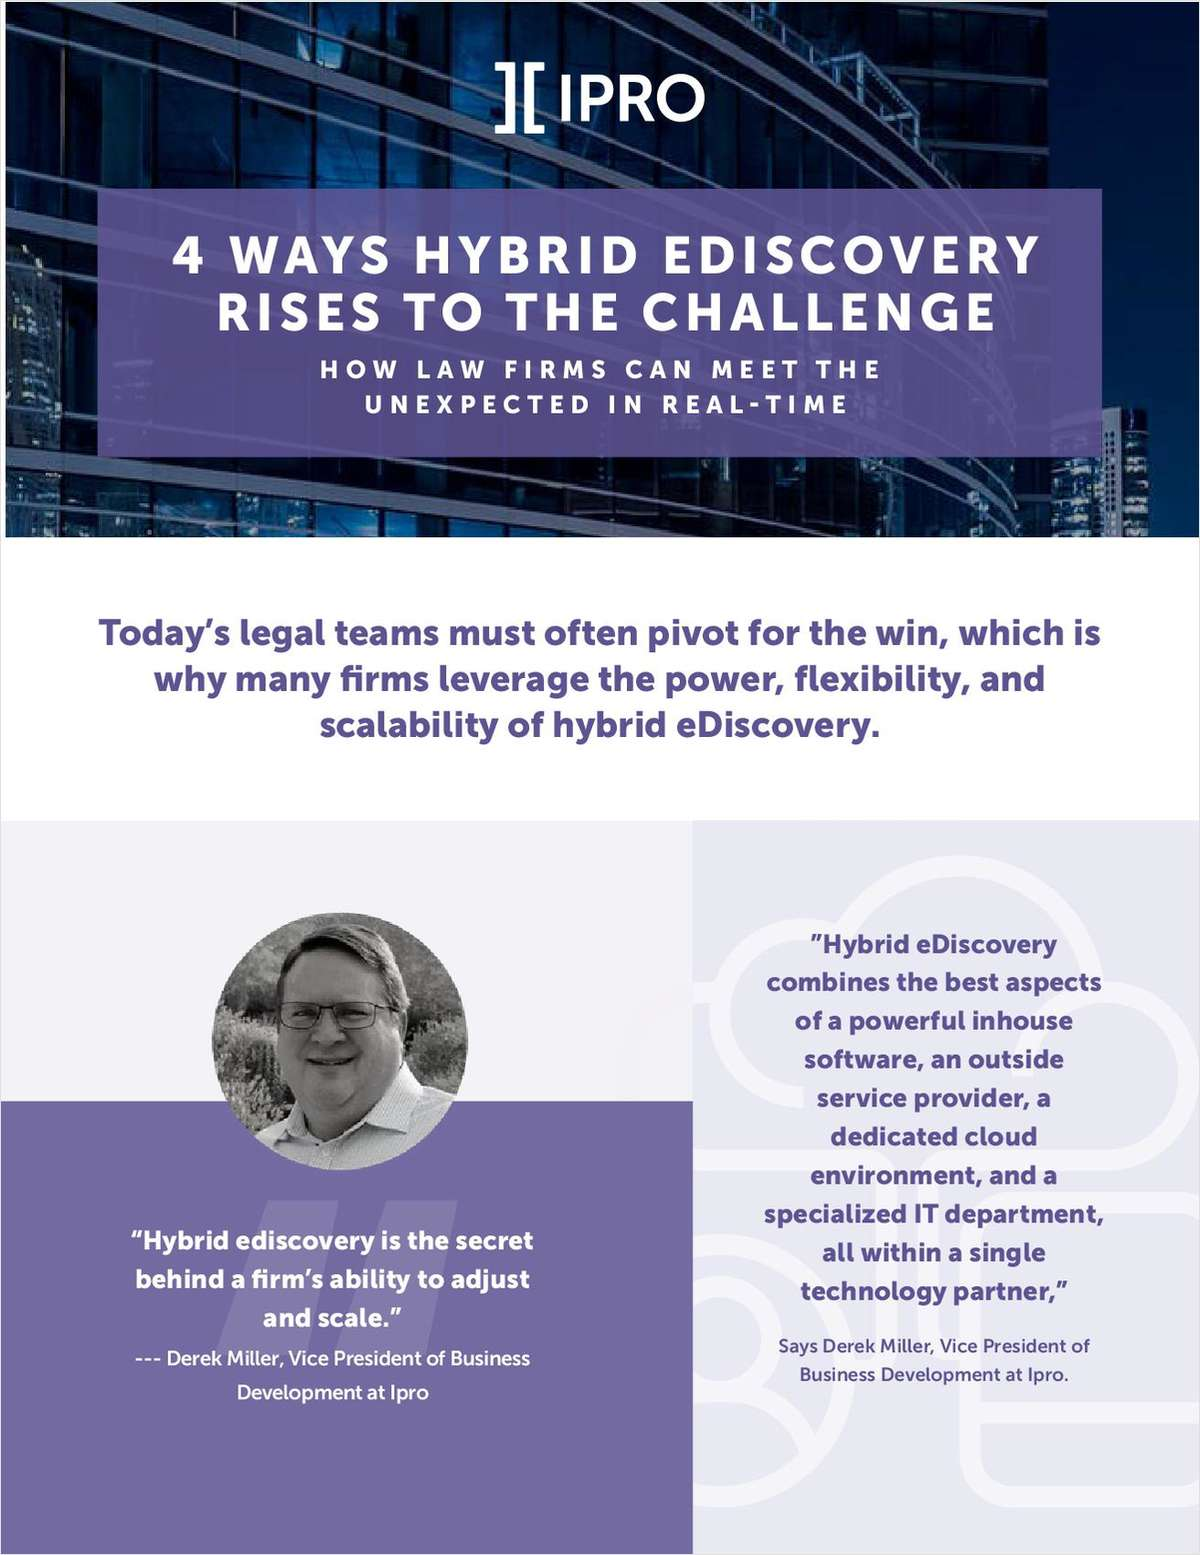 Today's legal teams must often pivot for the win. Discover how your firm can leverage the power, flexibility, and scalability of hybrid eDiscovery.